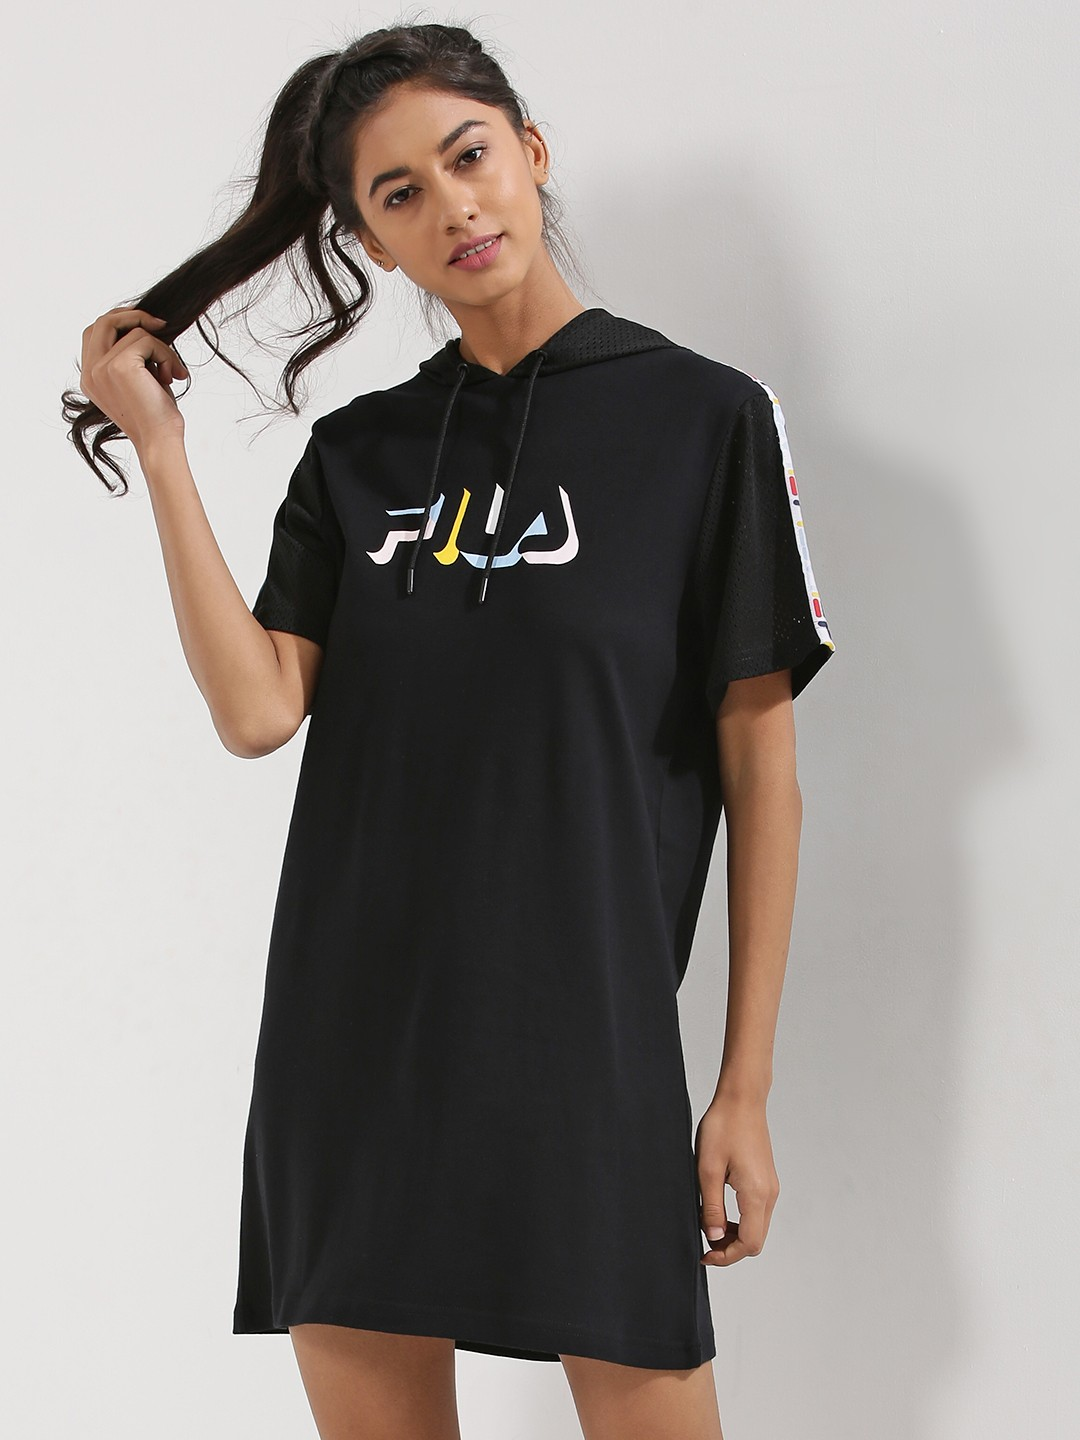 buy fila black mesh sleeve hooded t shirt dress for women women 39 s black tunic dresses online. Black Bedroom Furniture Sets. Home Design Ideas